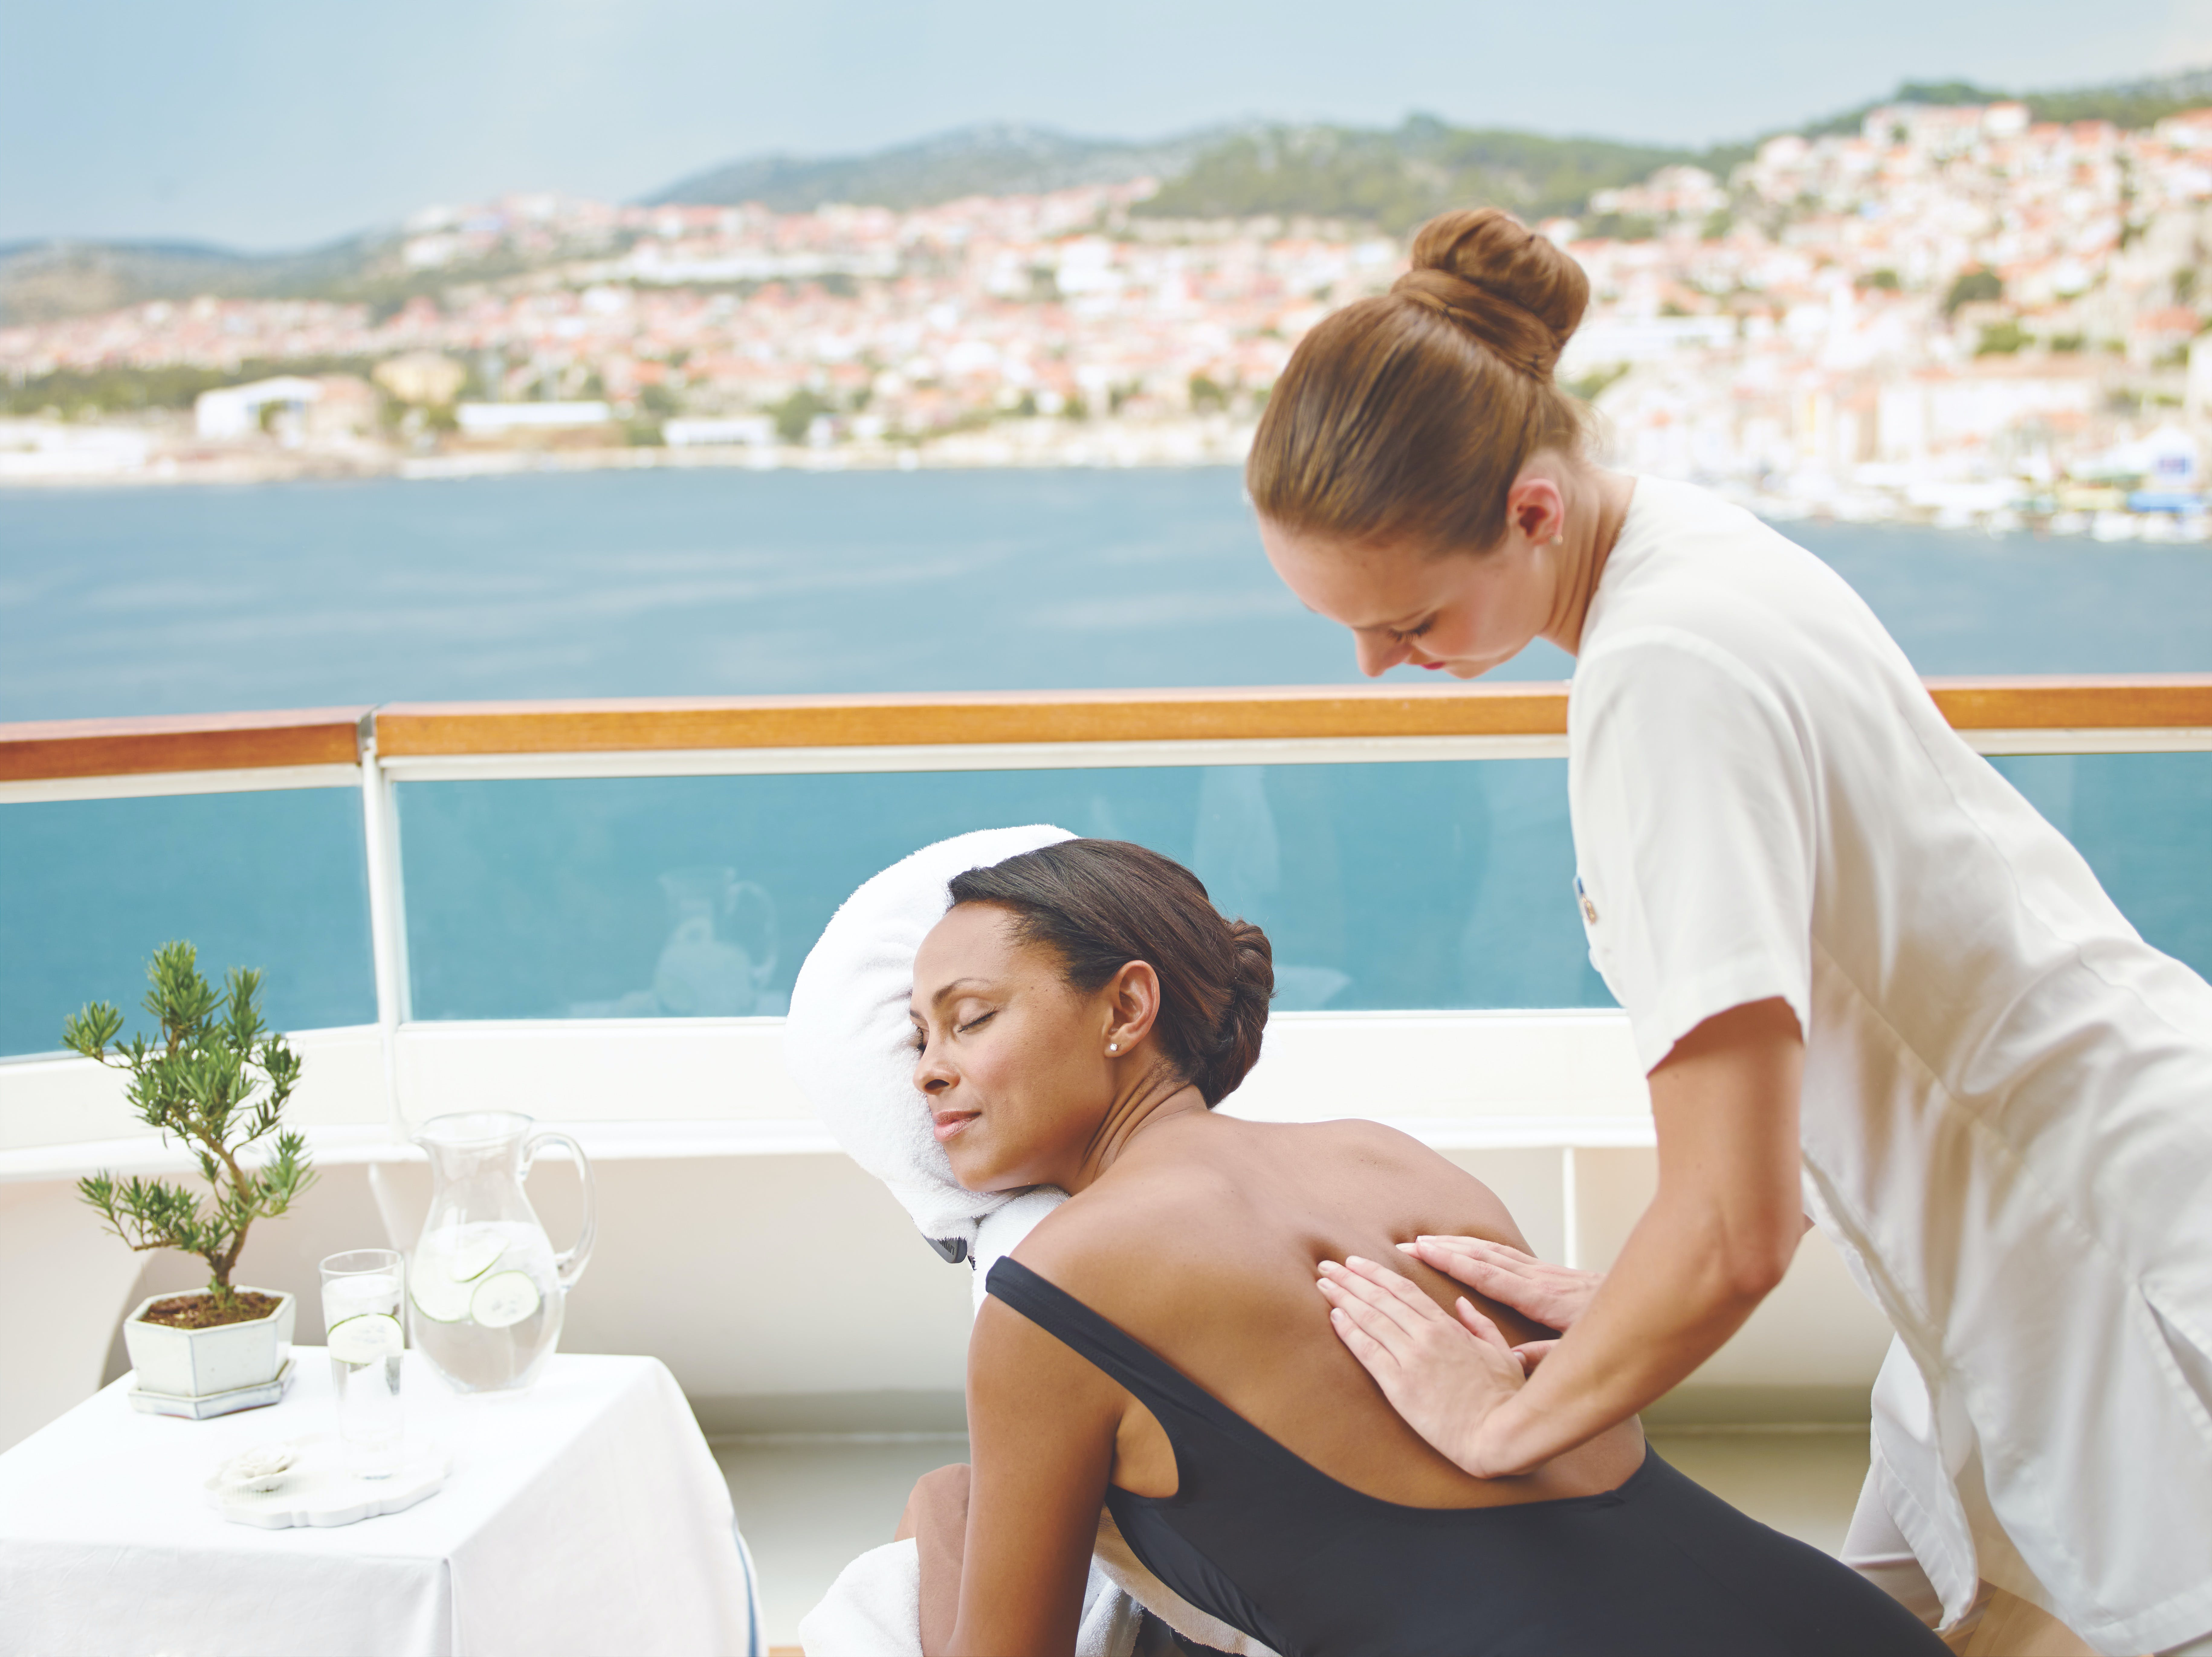 Seabourn's Spa & Wellness Voyages with Dr. Andrew Weil